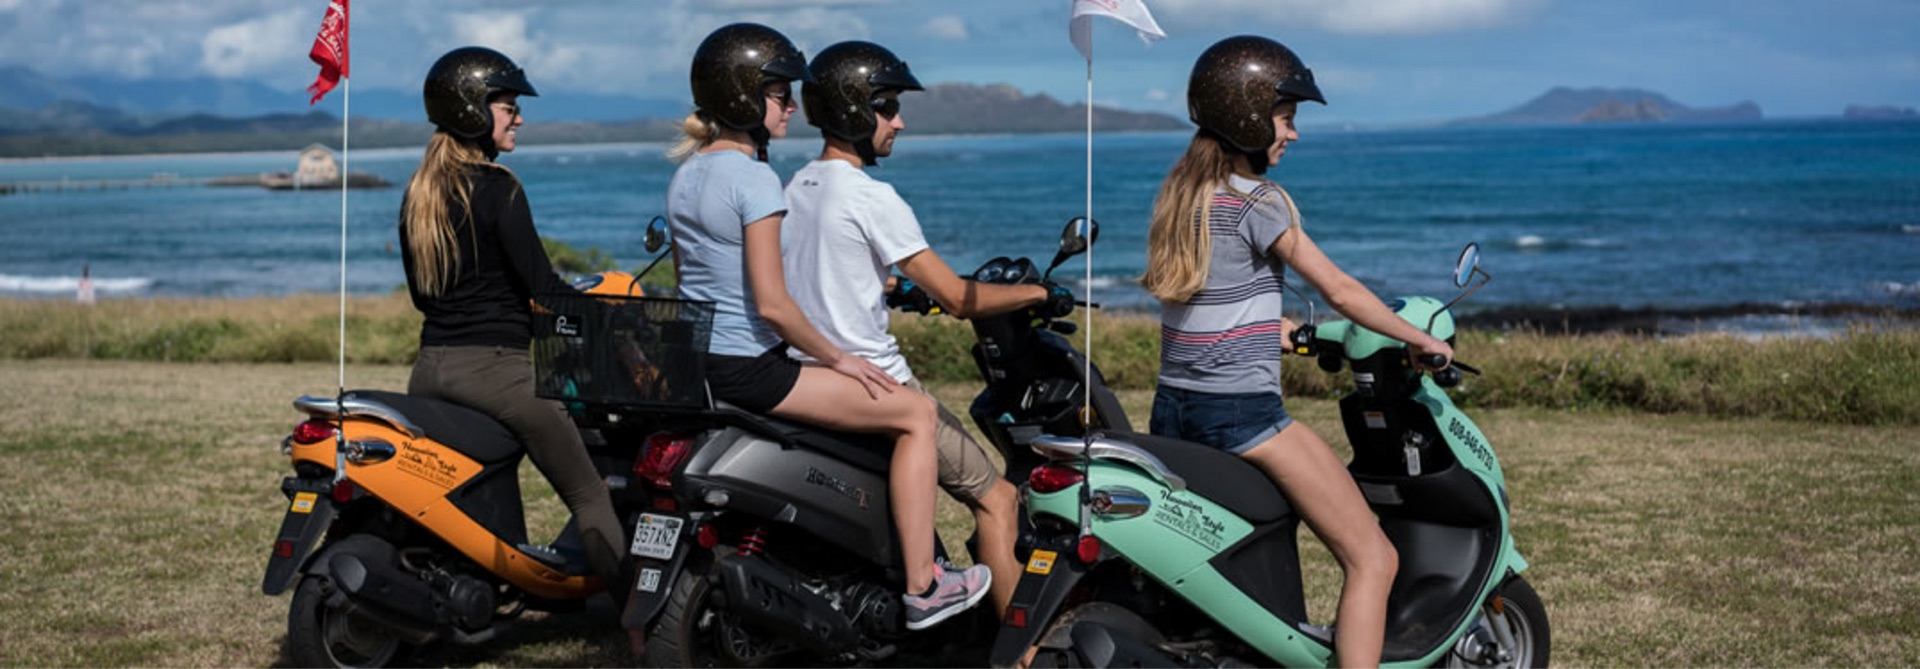 moped-header-16